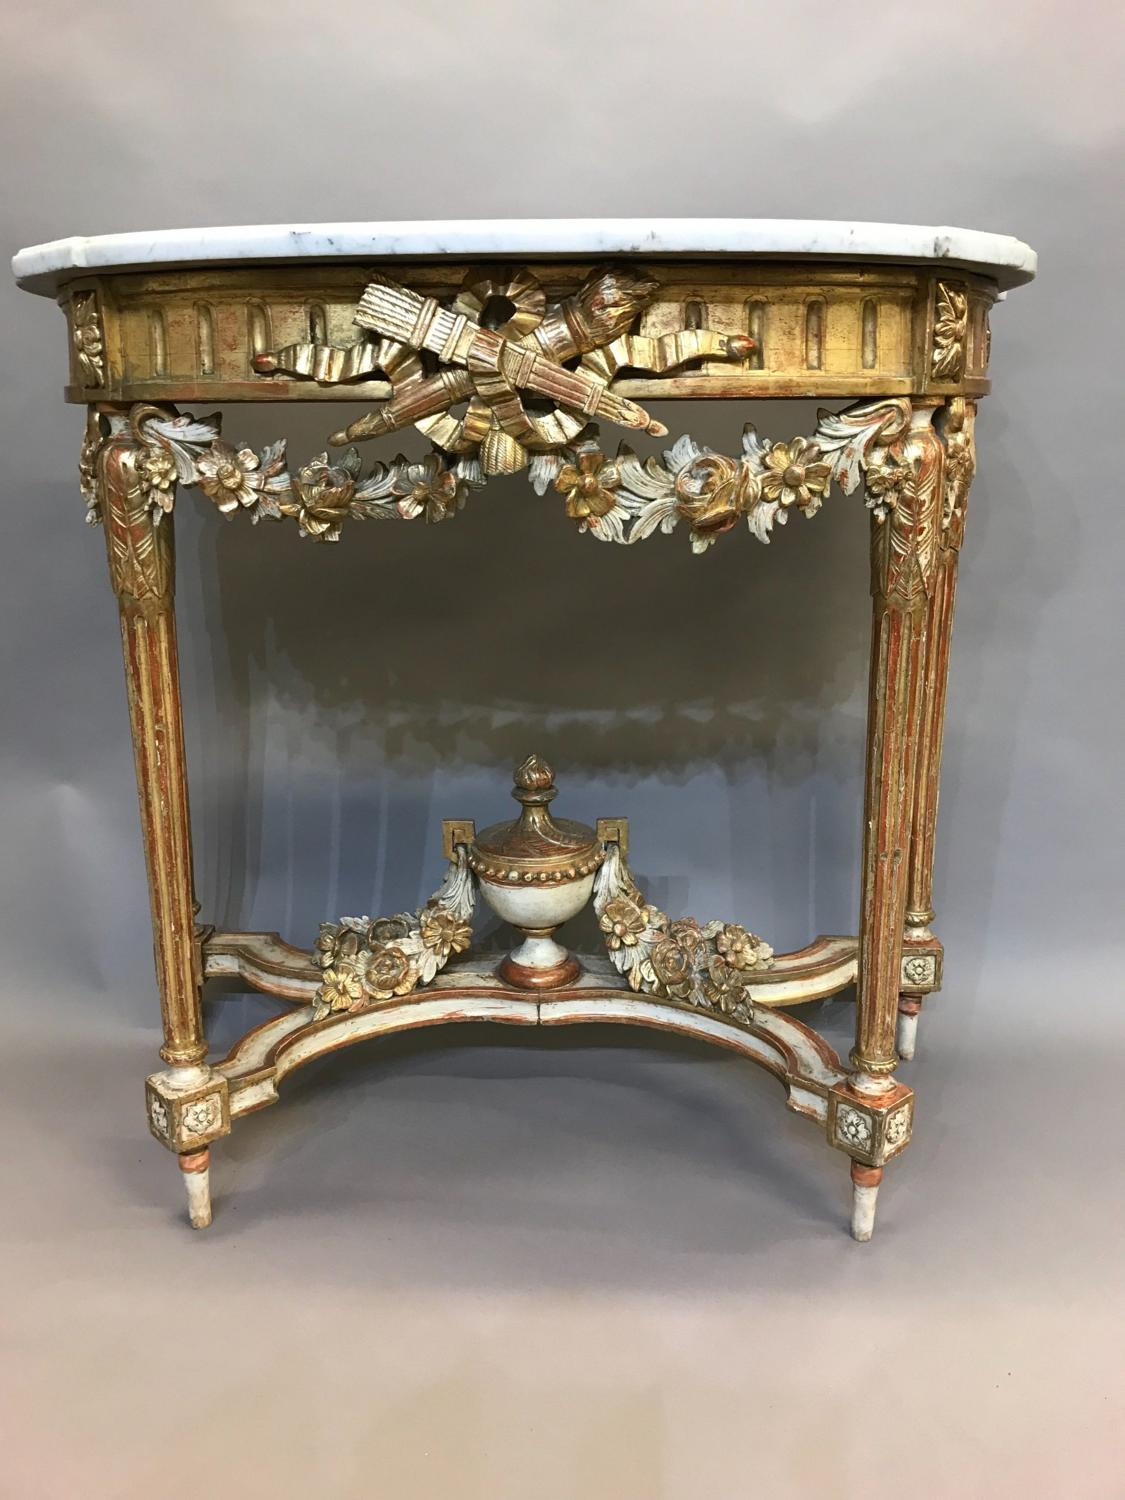 19th Century Marble Topped Gilt Wood French Consul Table